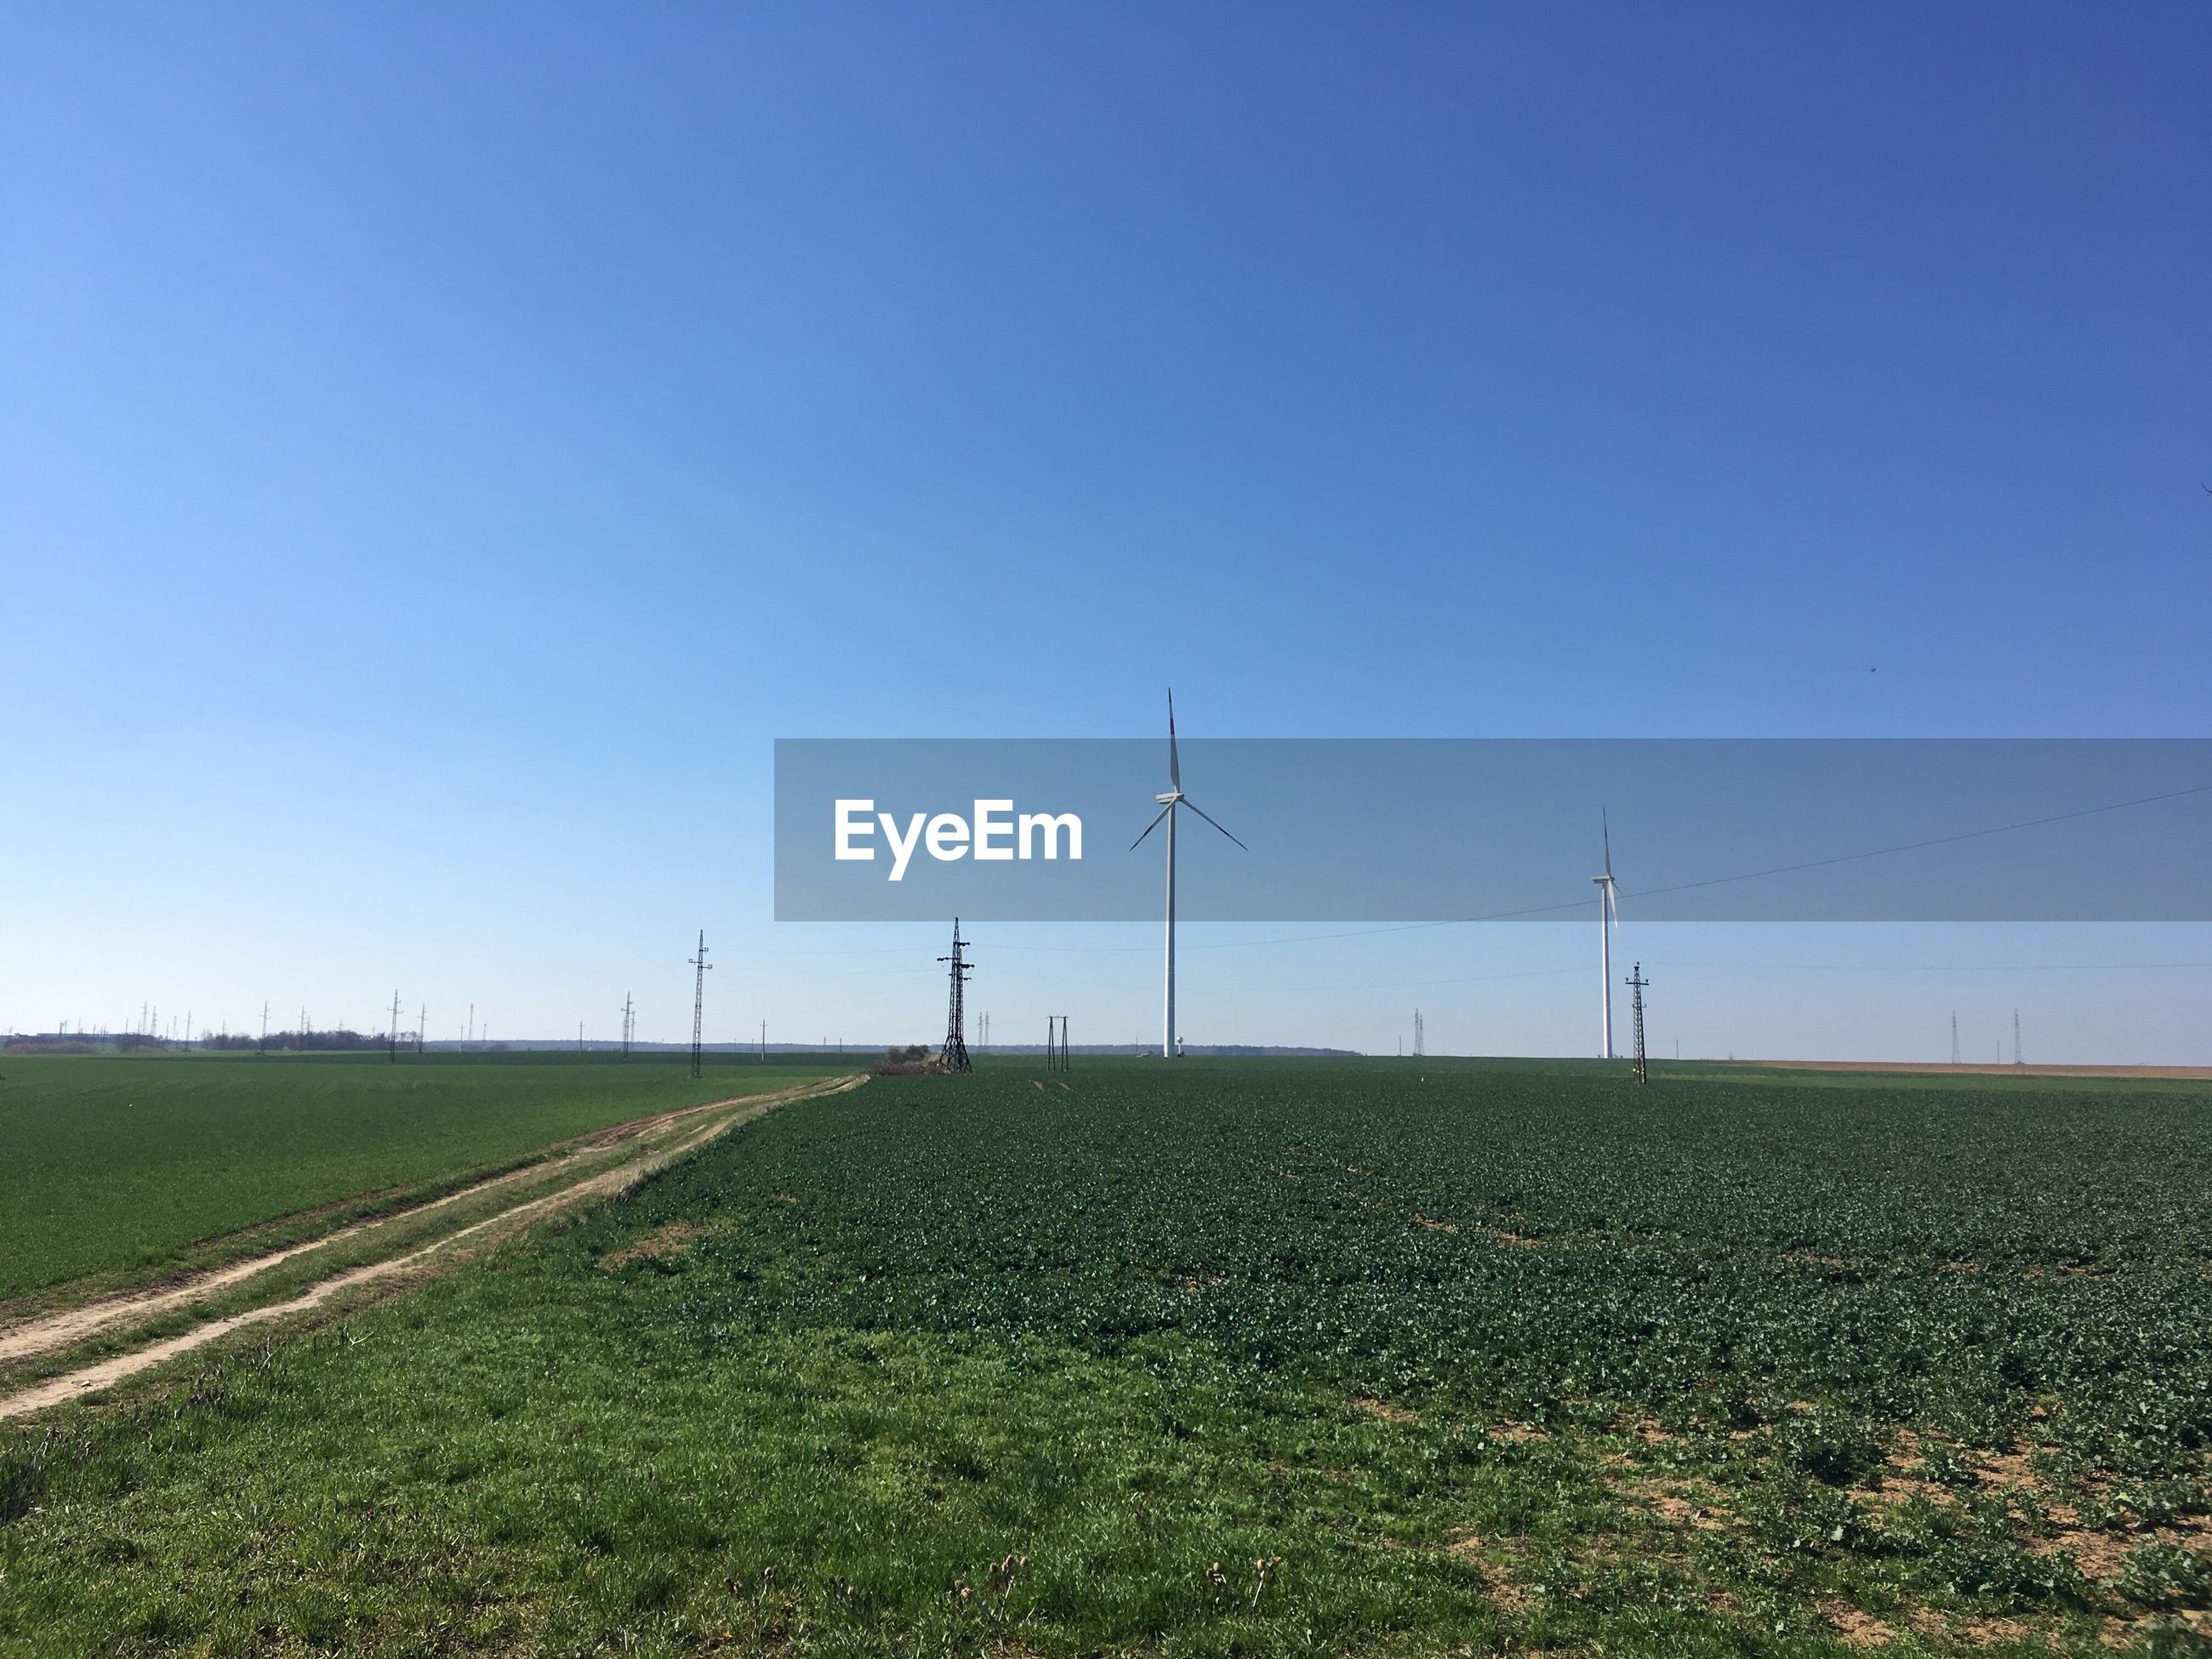 environment, environmental conservation, fuel and power generation, sky, turbine, renewable energy, wind turbine, landscape, alternative energy, field, land, blue, wind power, rural scene, grass, clear sky, nature, copy space, technology, plant, no people, sustainable resources, outdoors, power supply